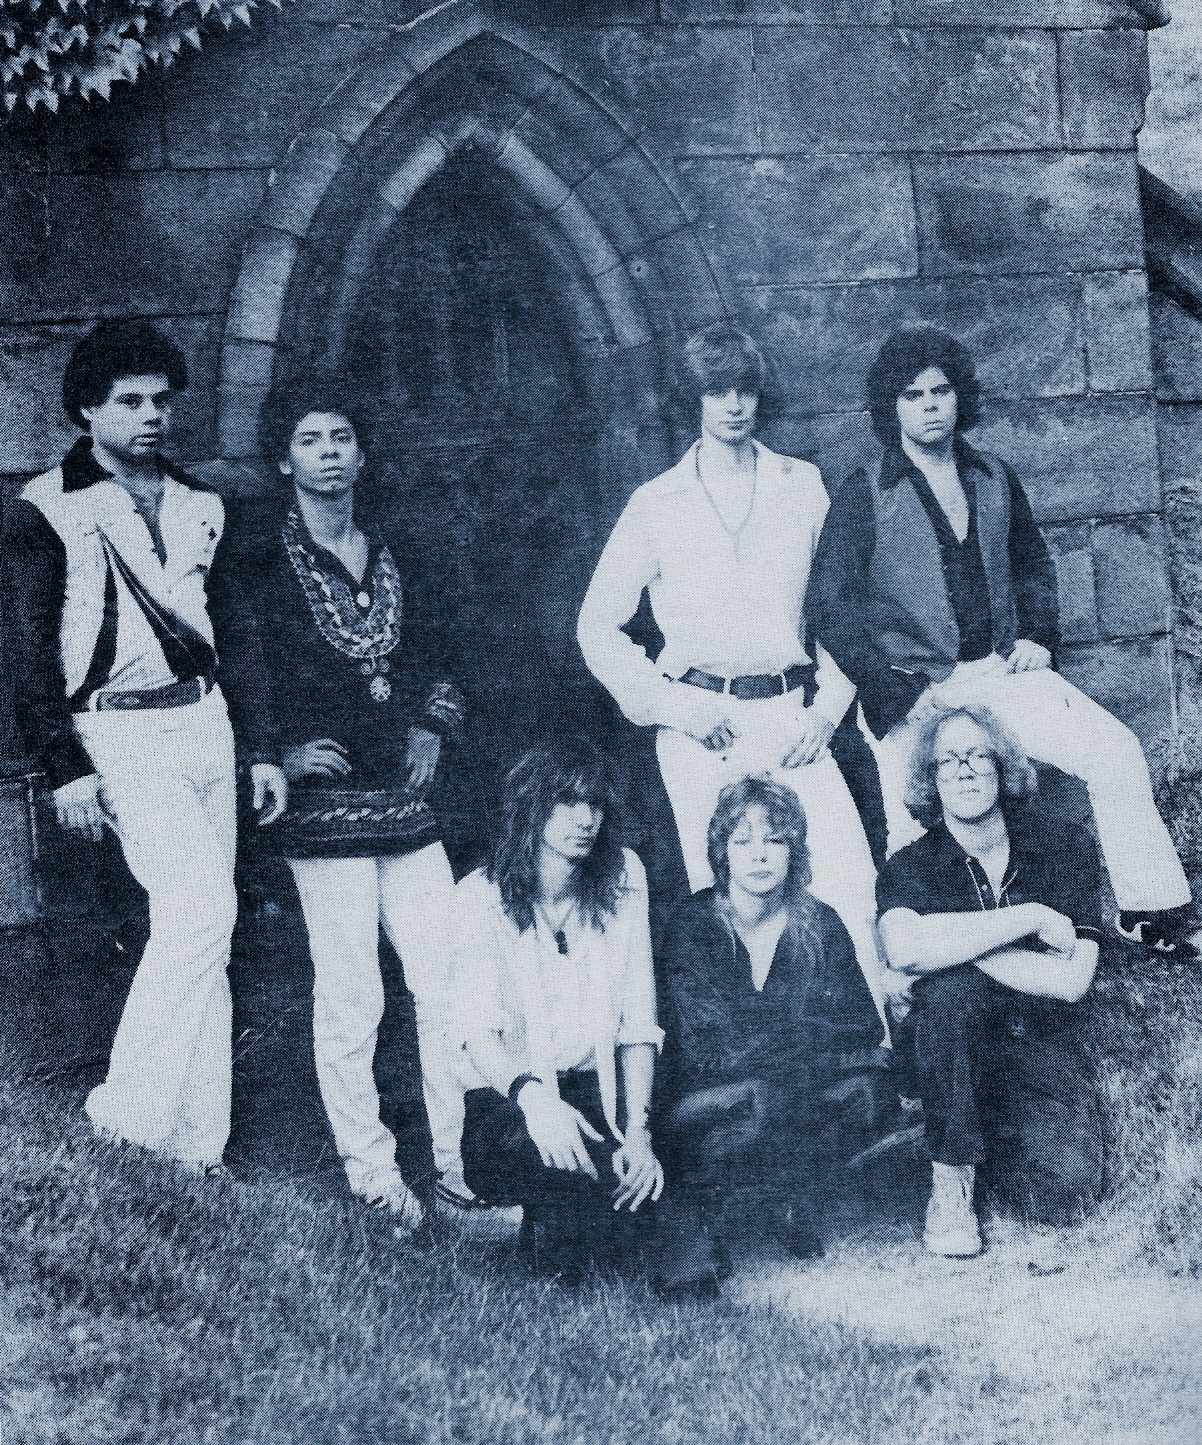 Parousia band photo - Forest Lawn Cemetary 1980